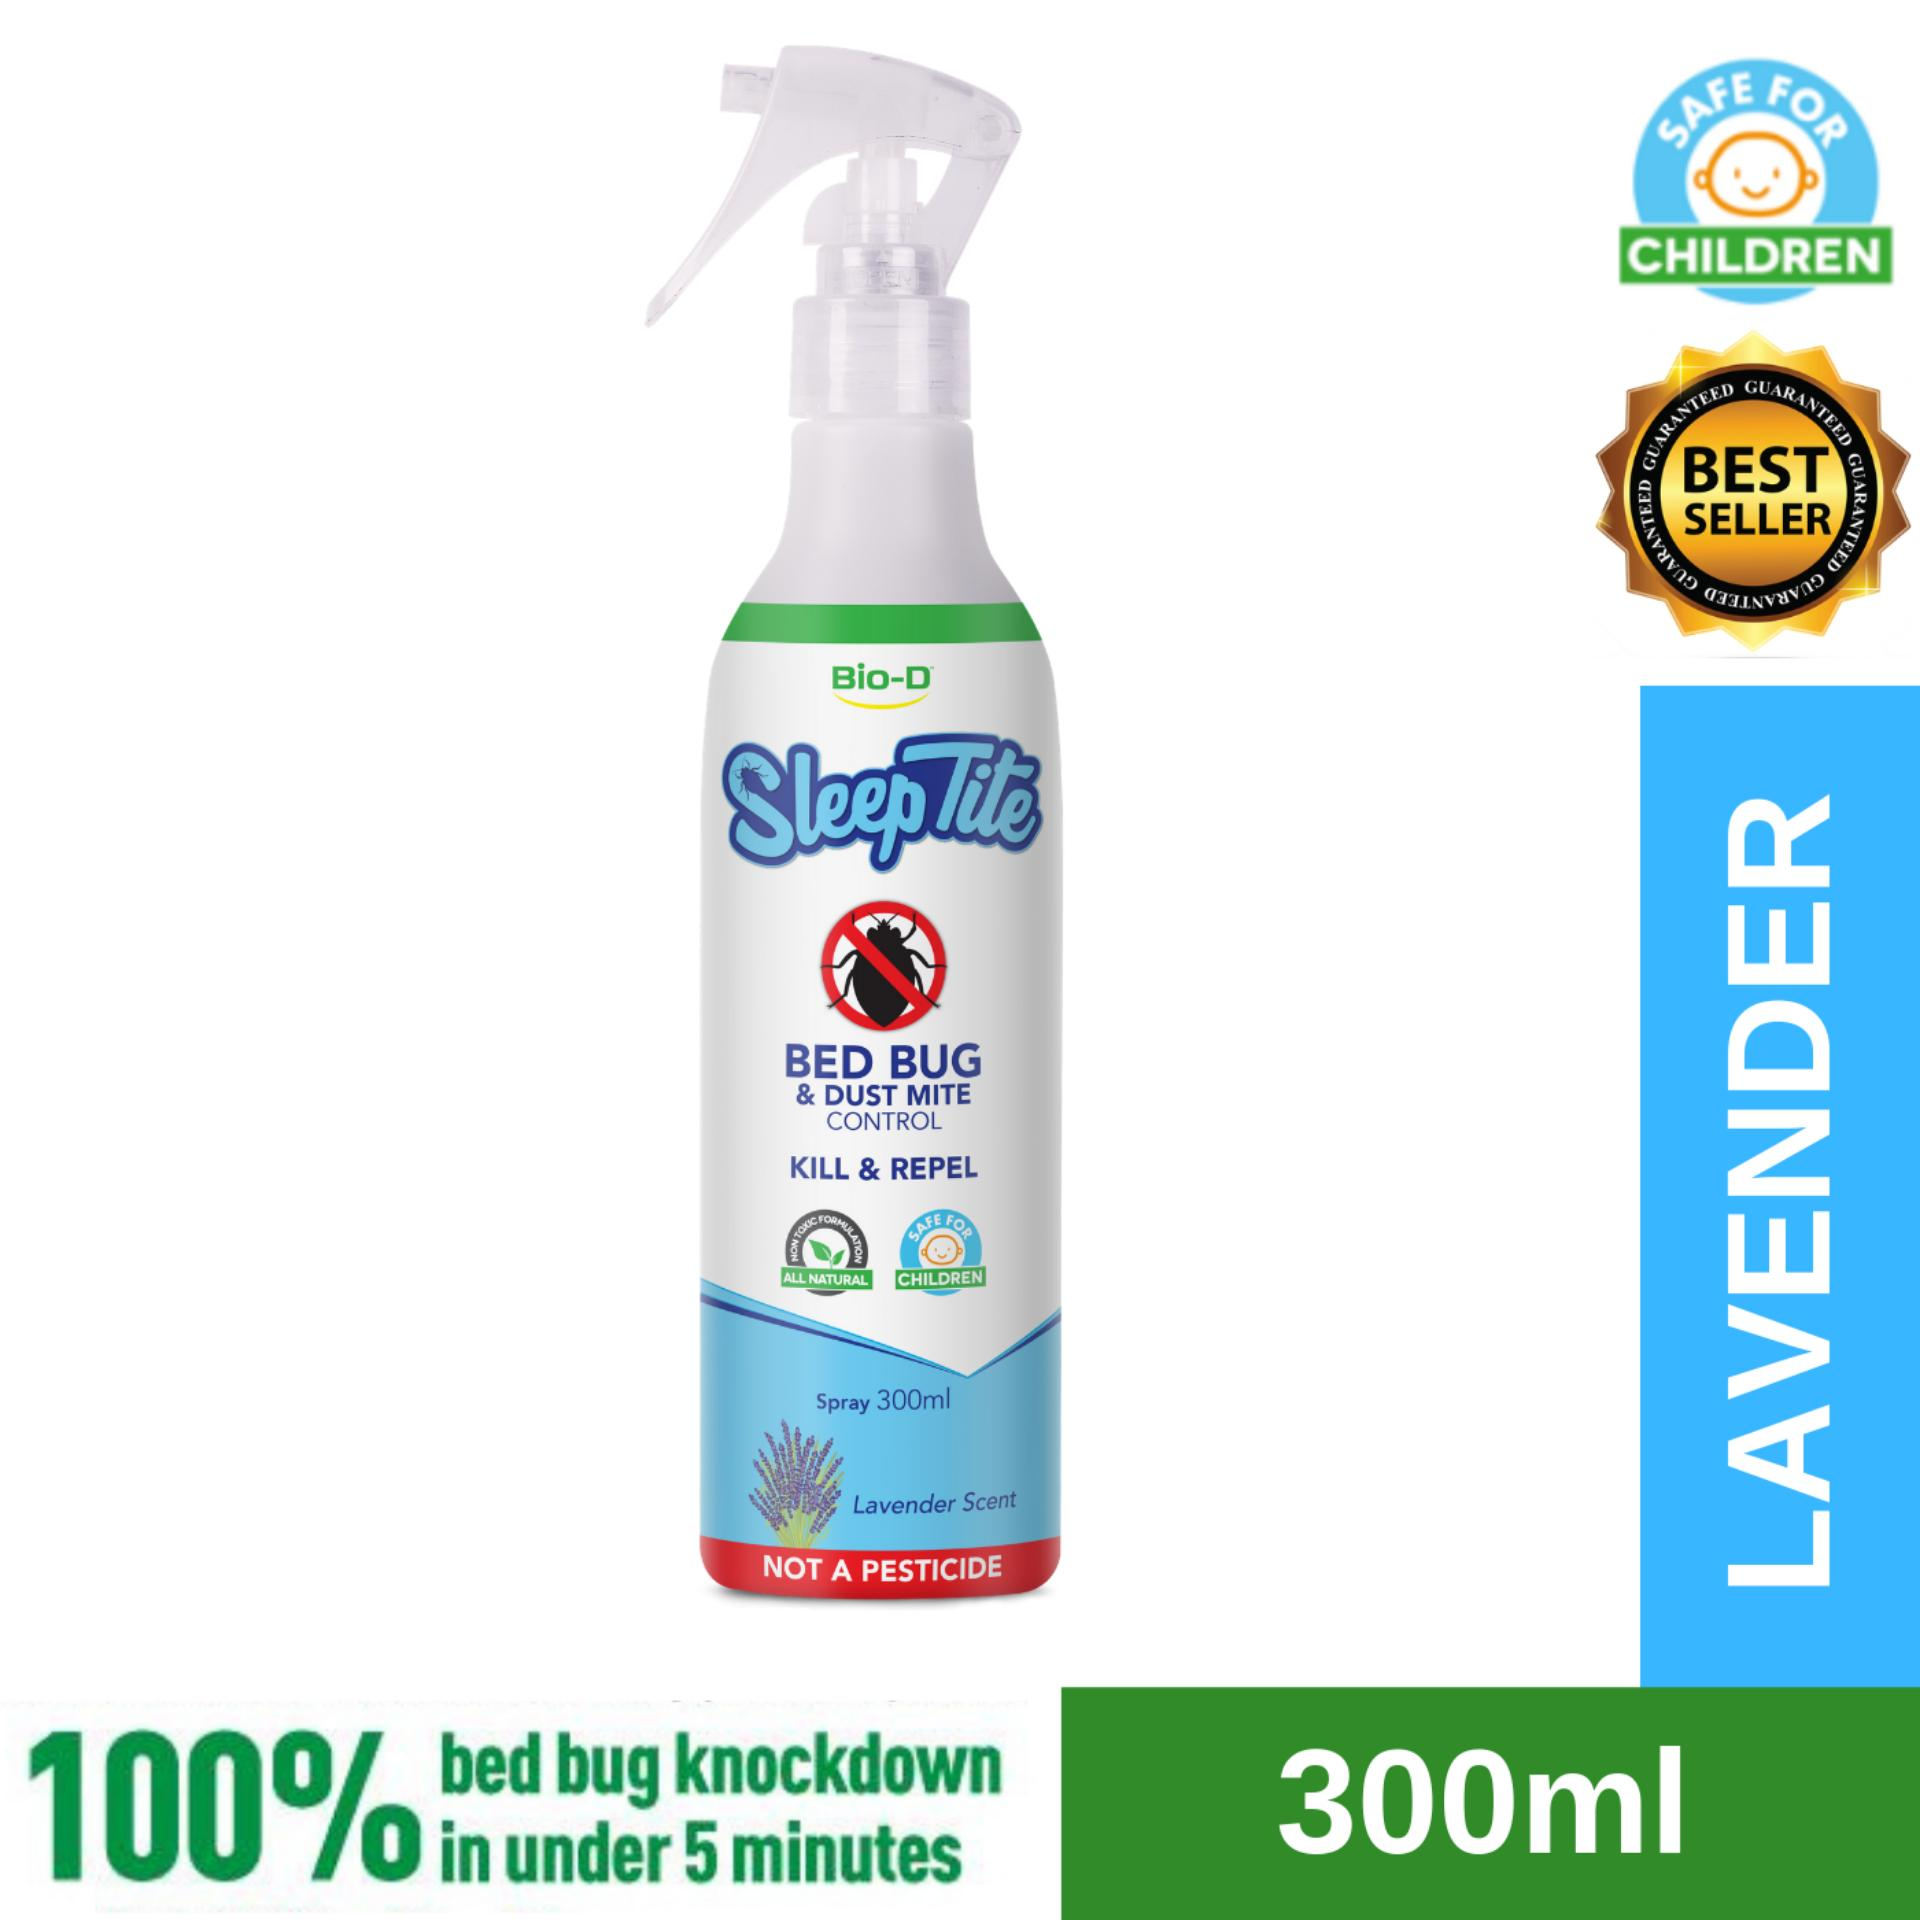 Bio-D SleepTite Bed Bug & Dust Mite Control Spray 300ml (Lavender)